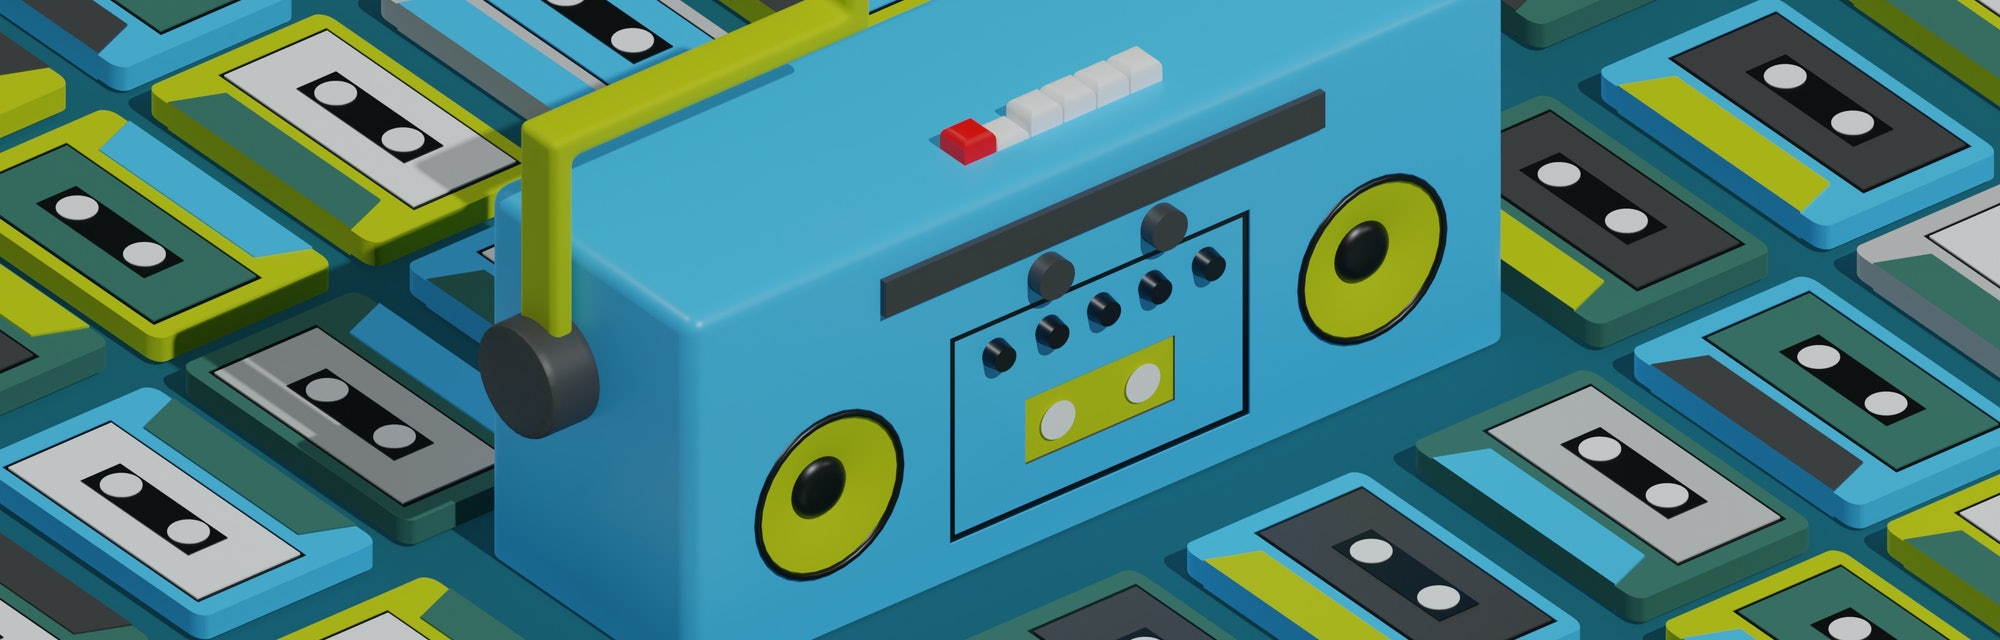 3d illustration of a compact tape player and cassette